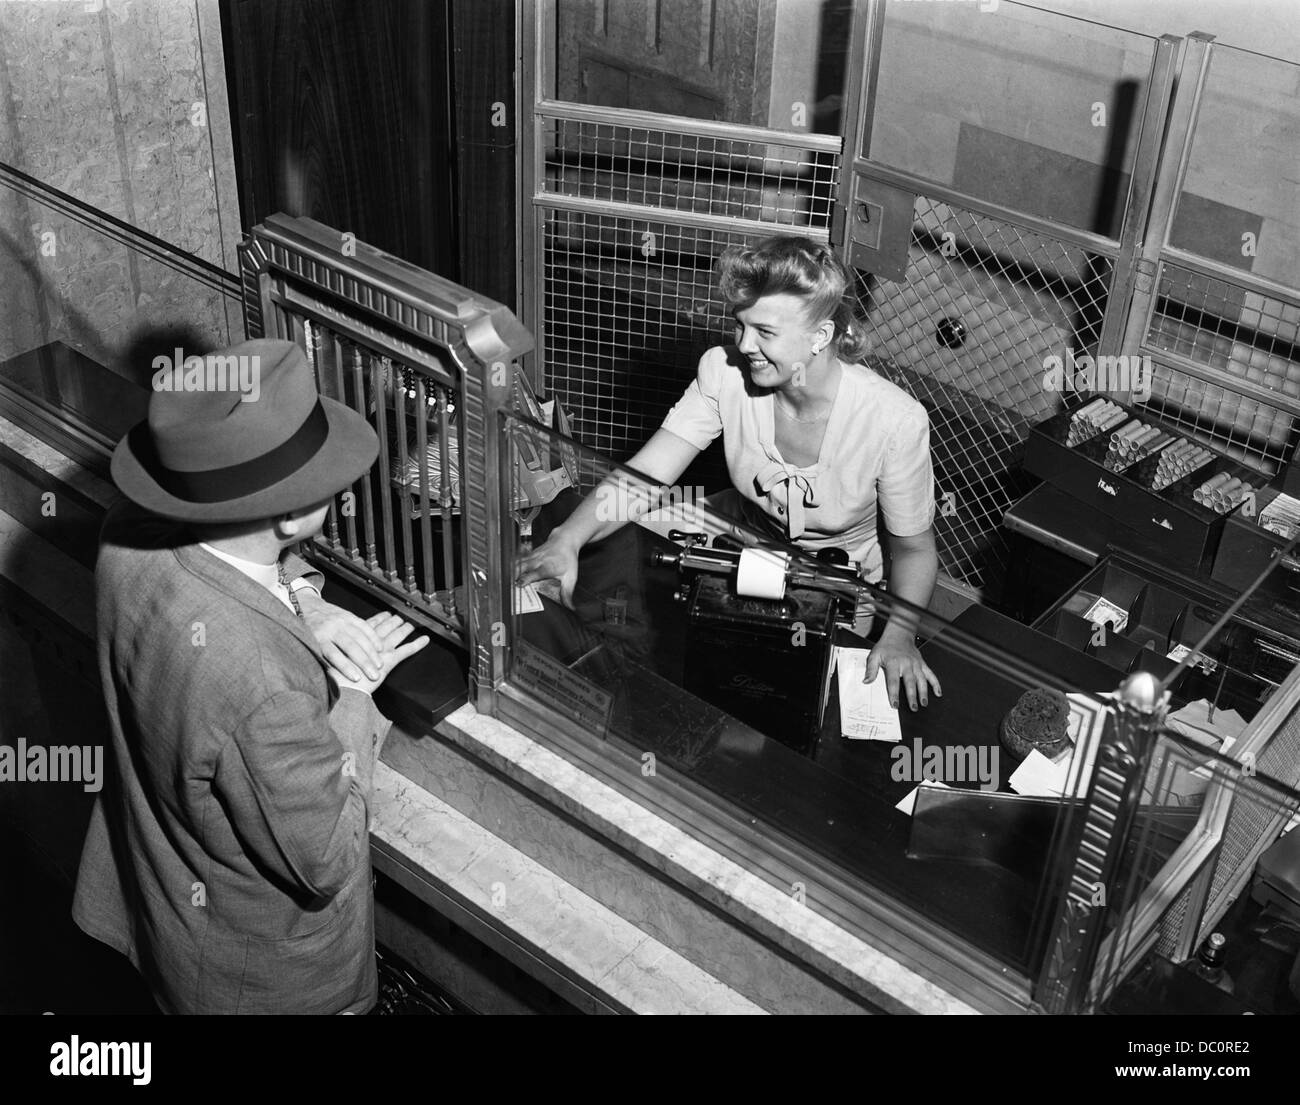 Banc Tele 1940s Woman Bank Teller Behind Cage Serving Male Customer